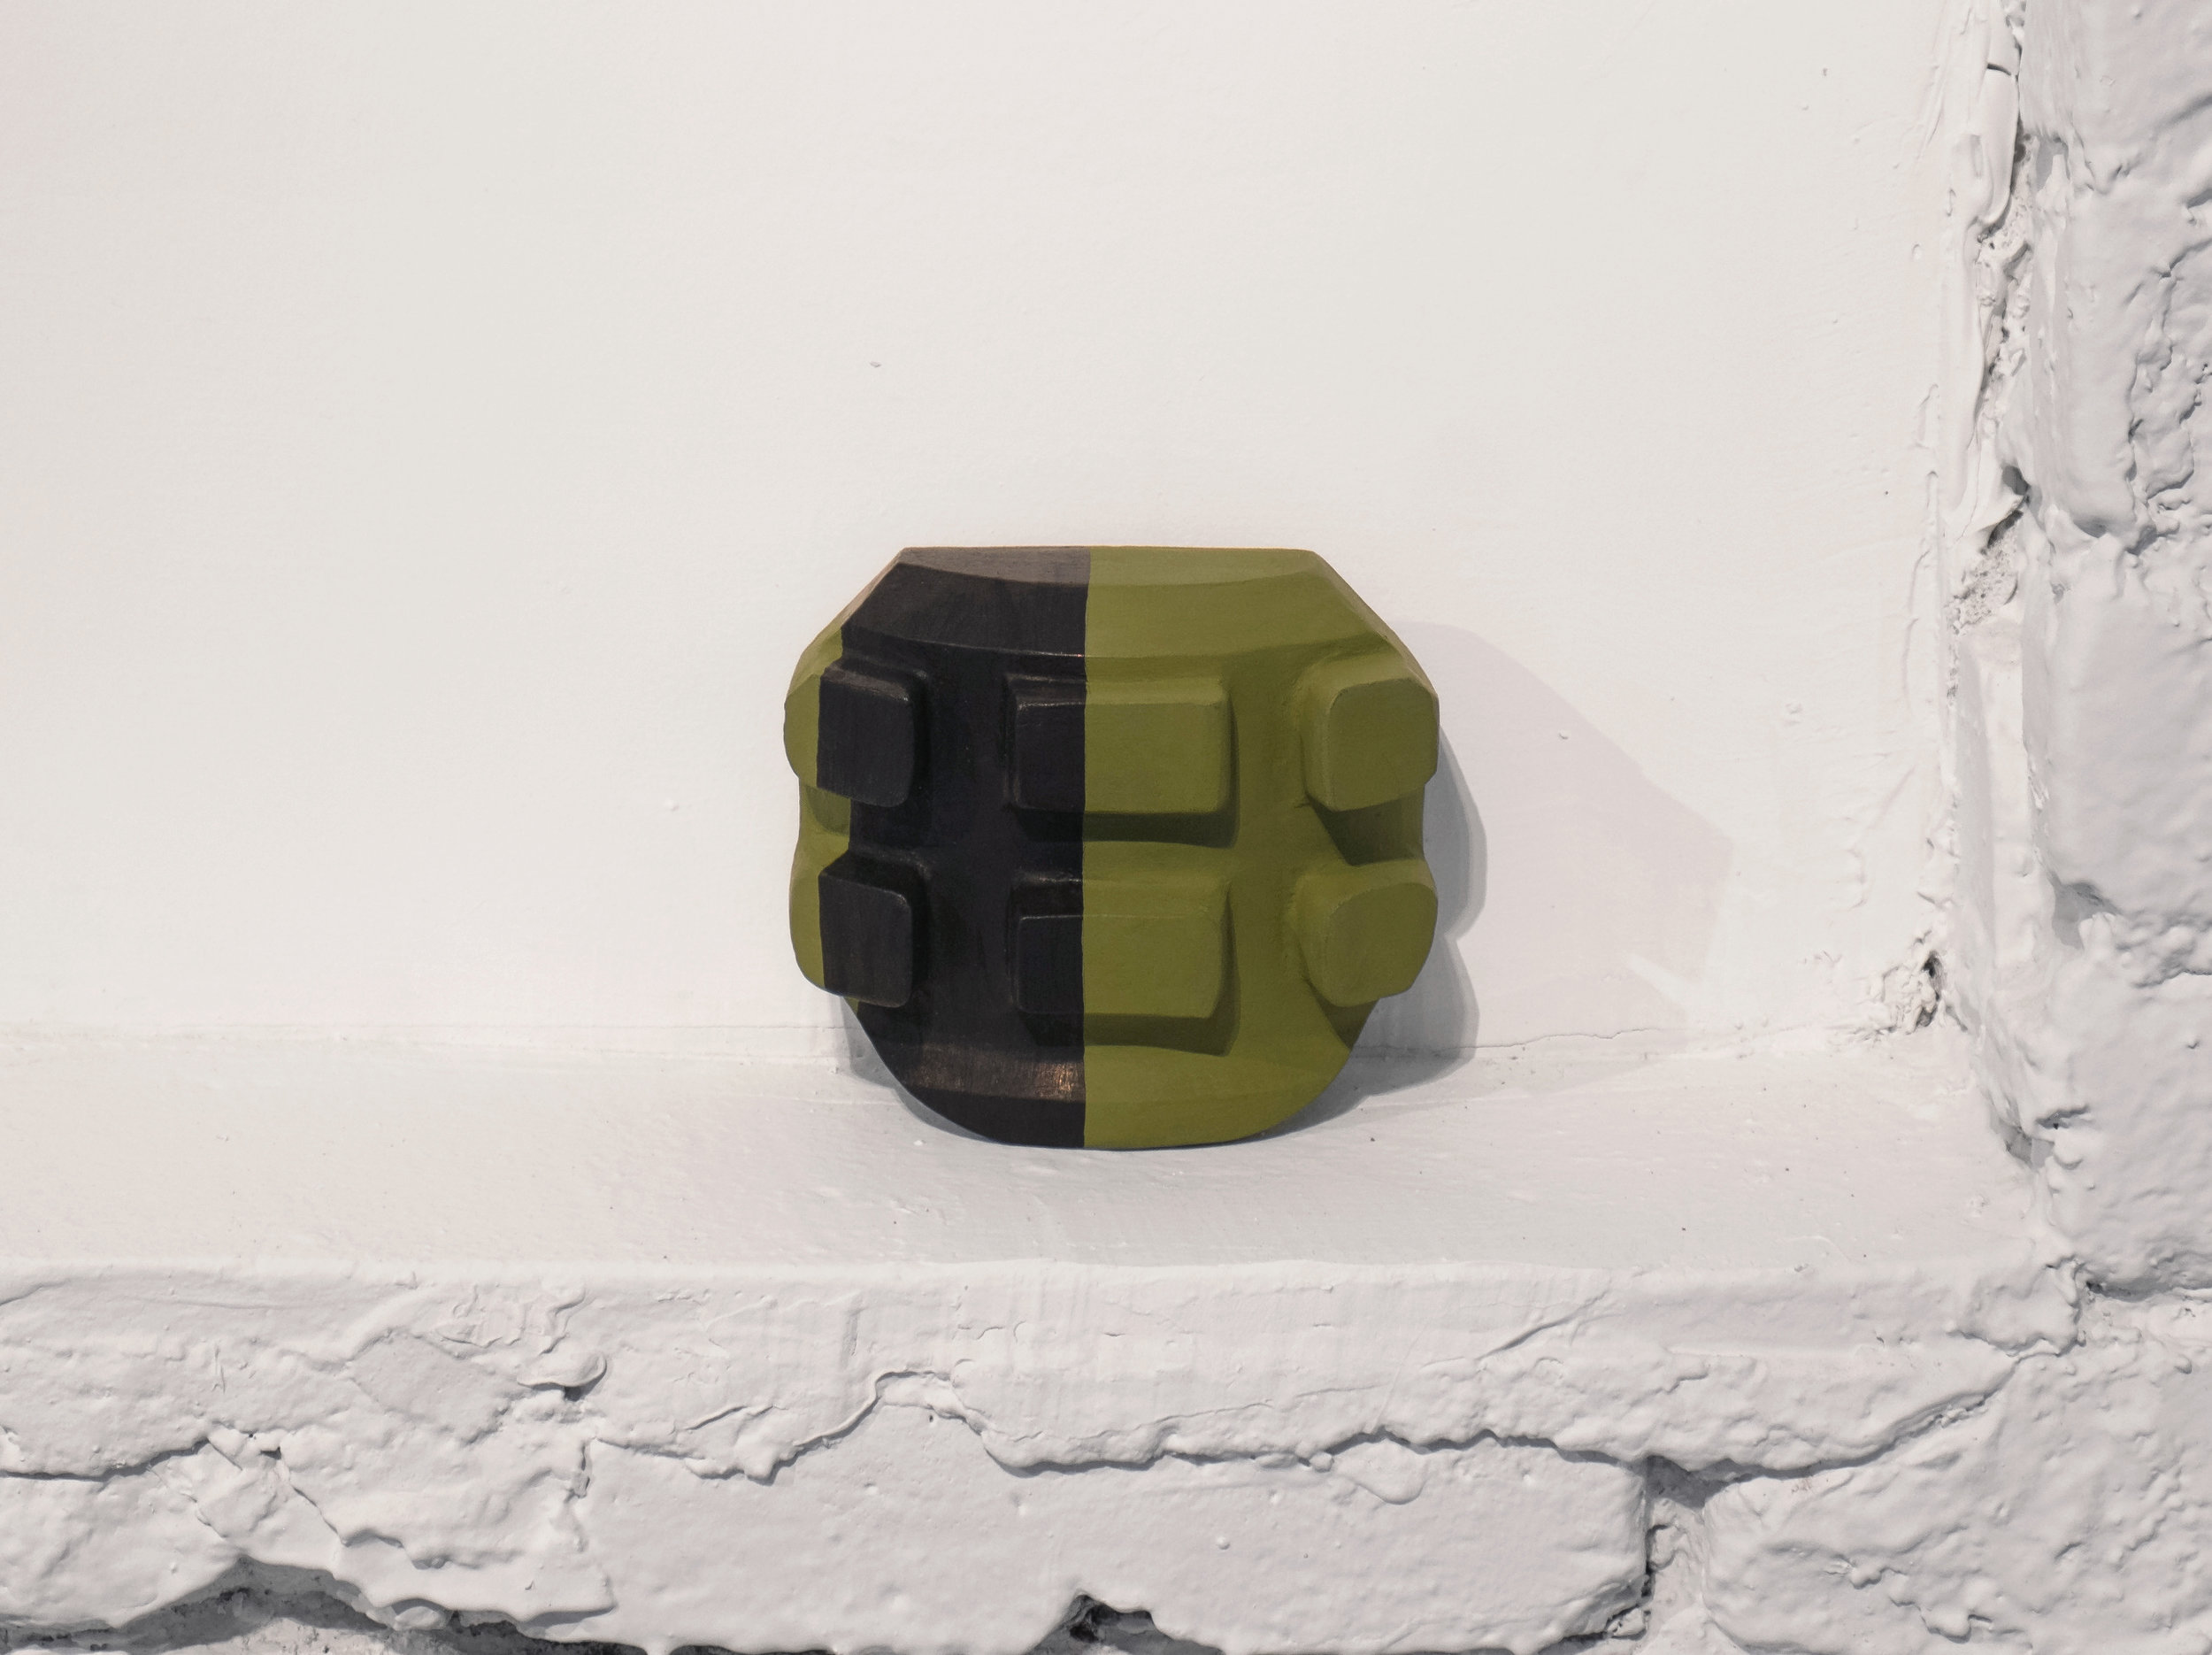 Untitled, 2012, plaster, paint, 4 ⅞ x 1 ¾ x 4 ¼""